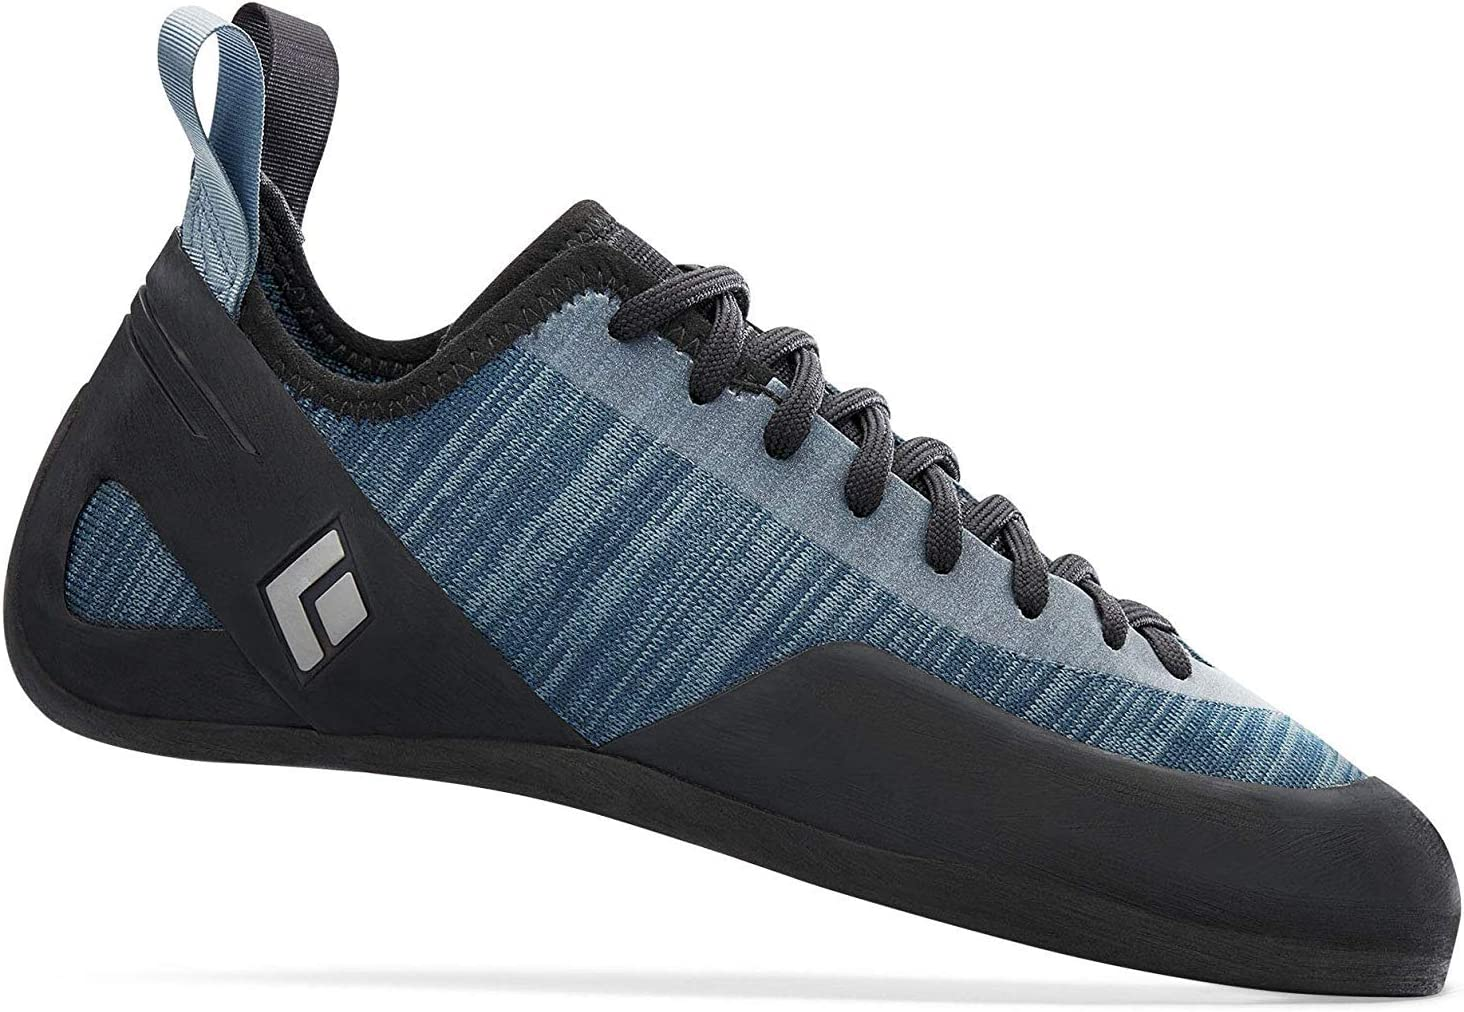 Black Diamond Mens Momentum Lace Climbing Shoes